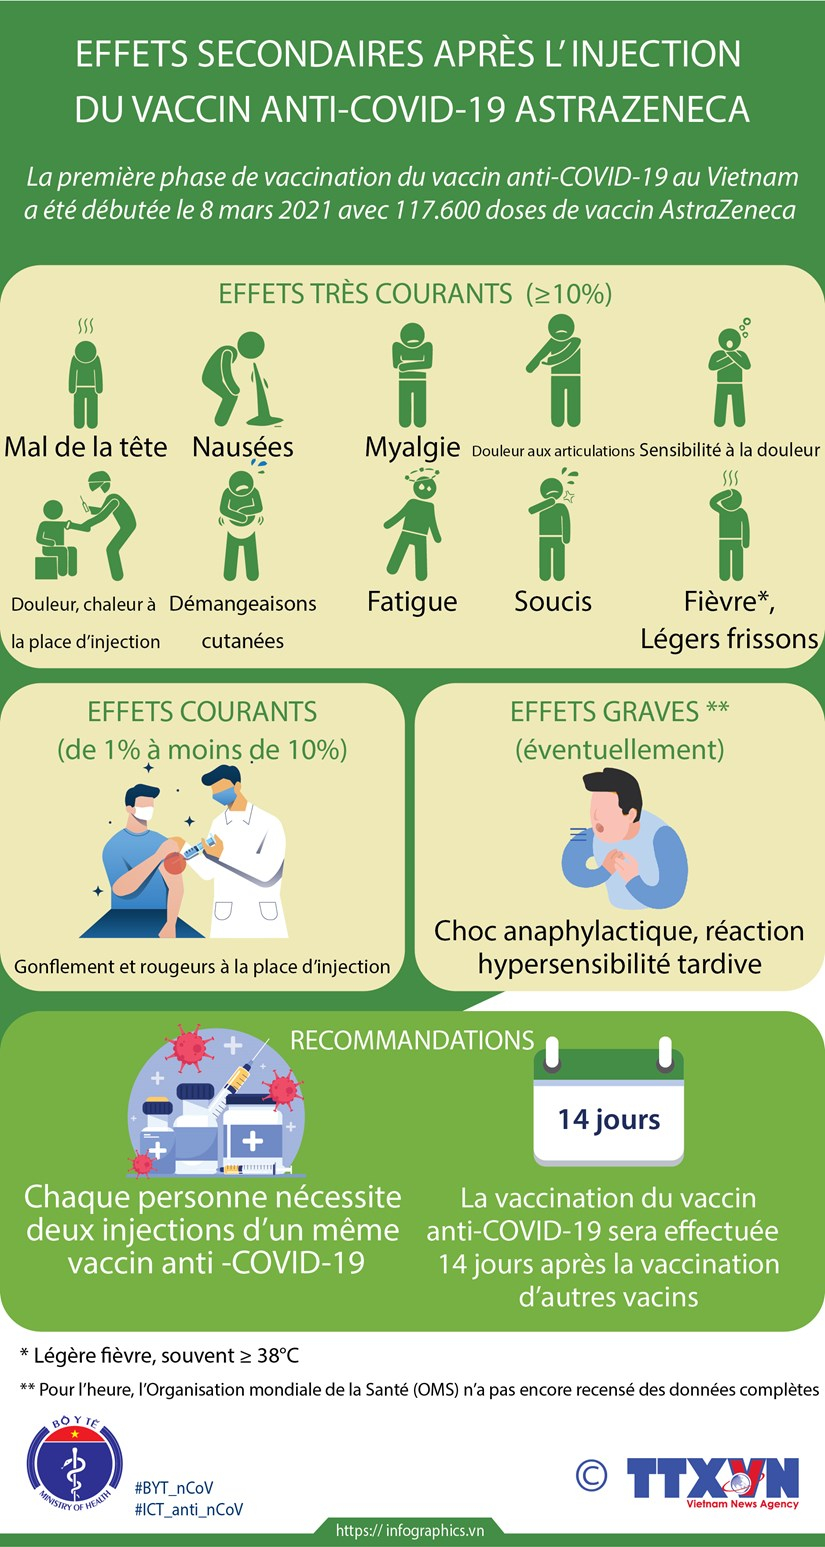 Effets secondaires apres l'injection du vaccin anti- COVID-19 AstraZeneca hinh anh 1